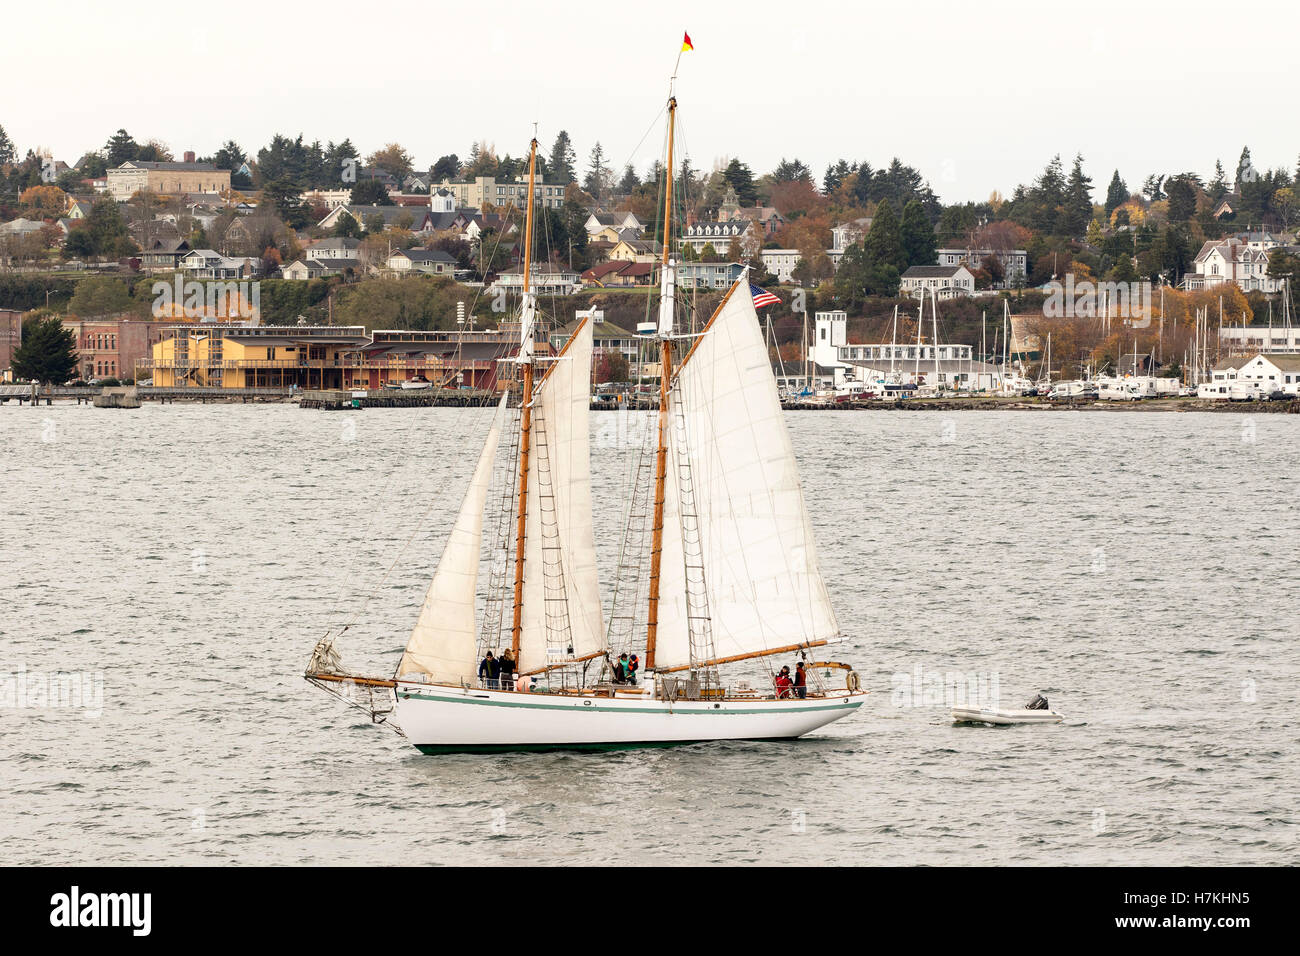 Port Townsend sailing boat, sailboat wooden schooner yacht , Puget Sound, Washington with Northwest Maritime Center. - Stock Image